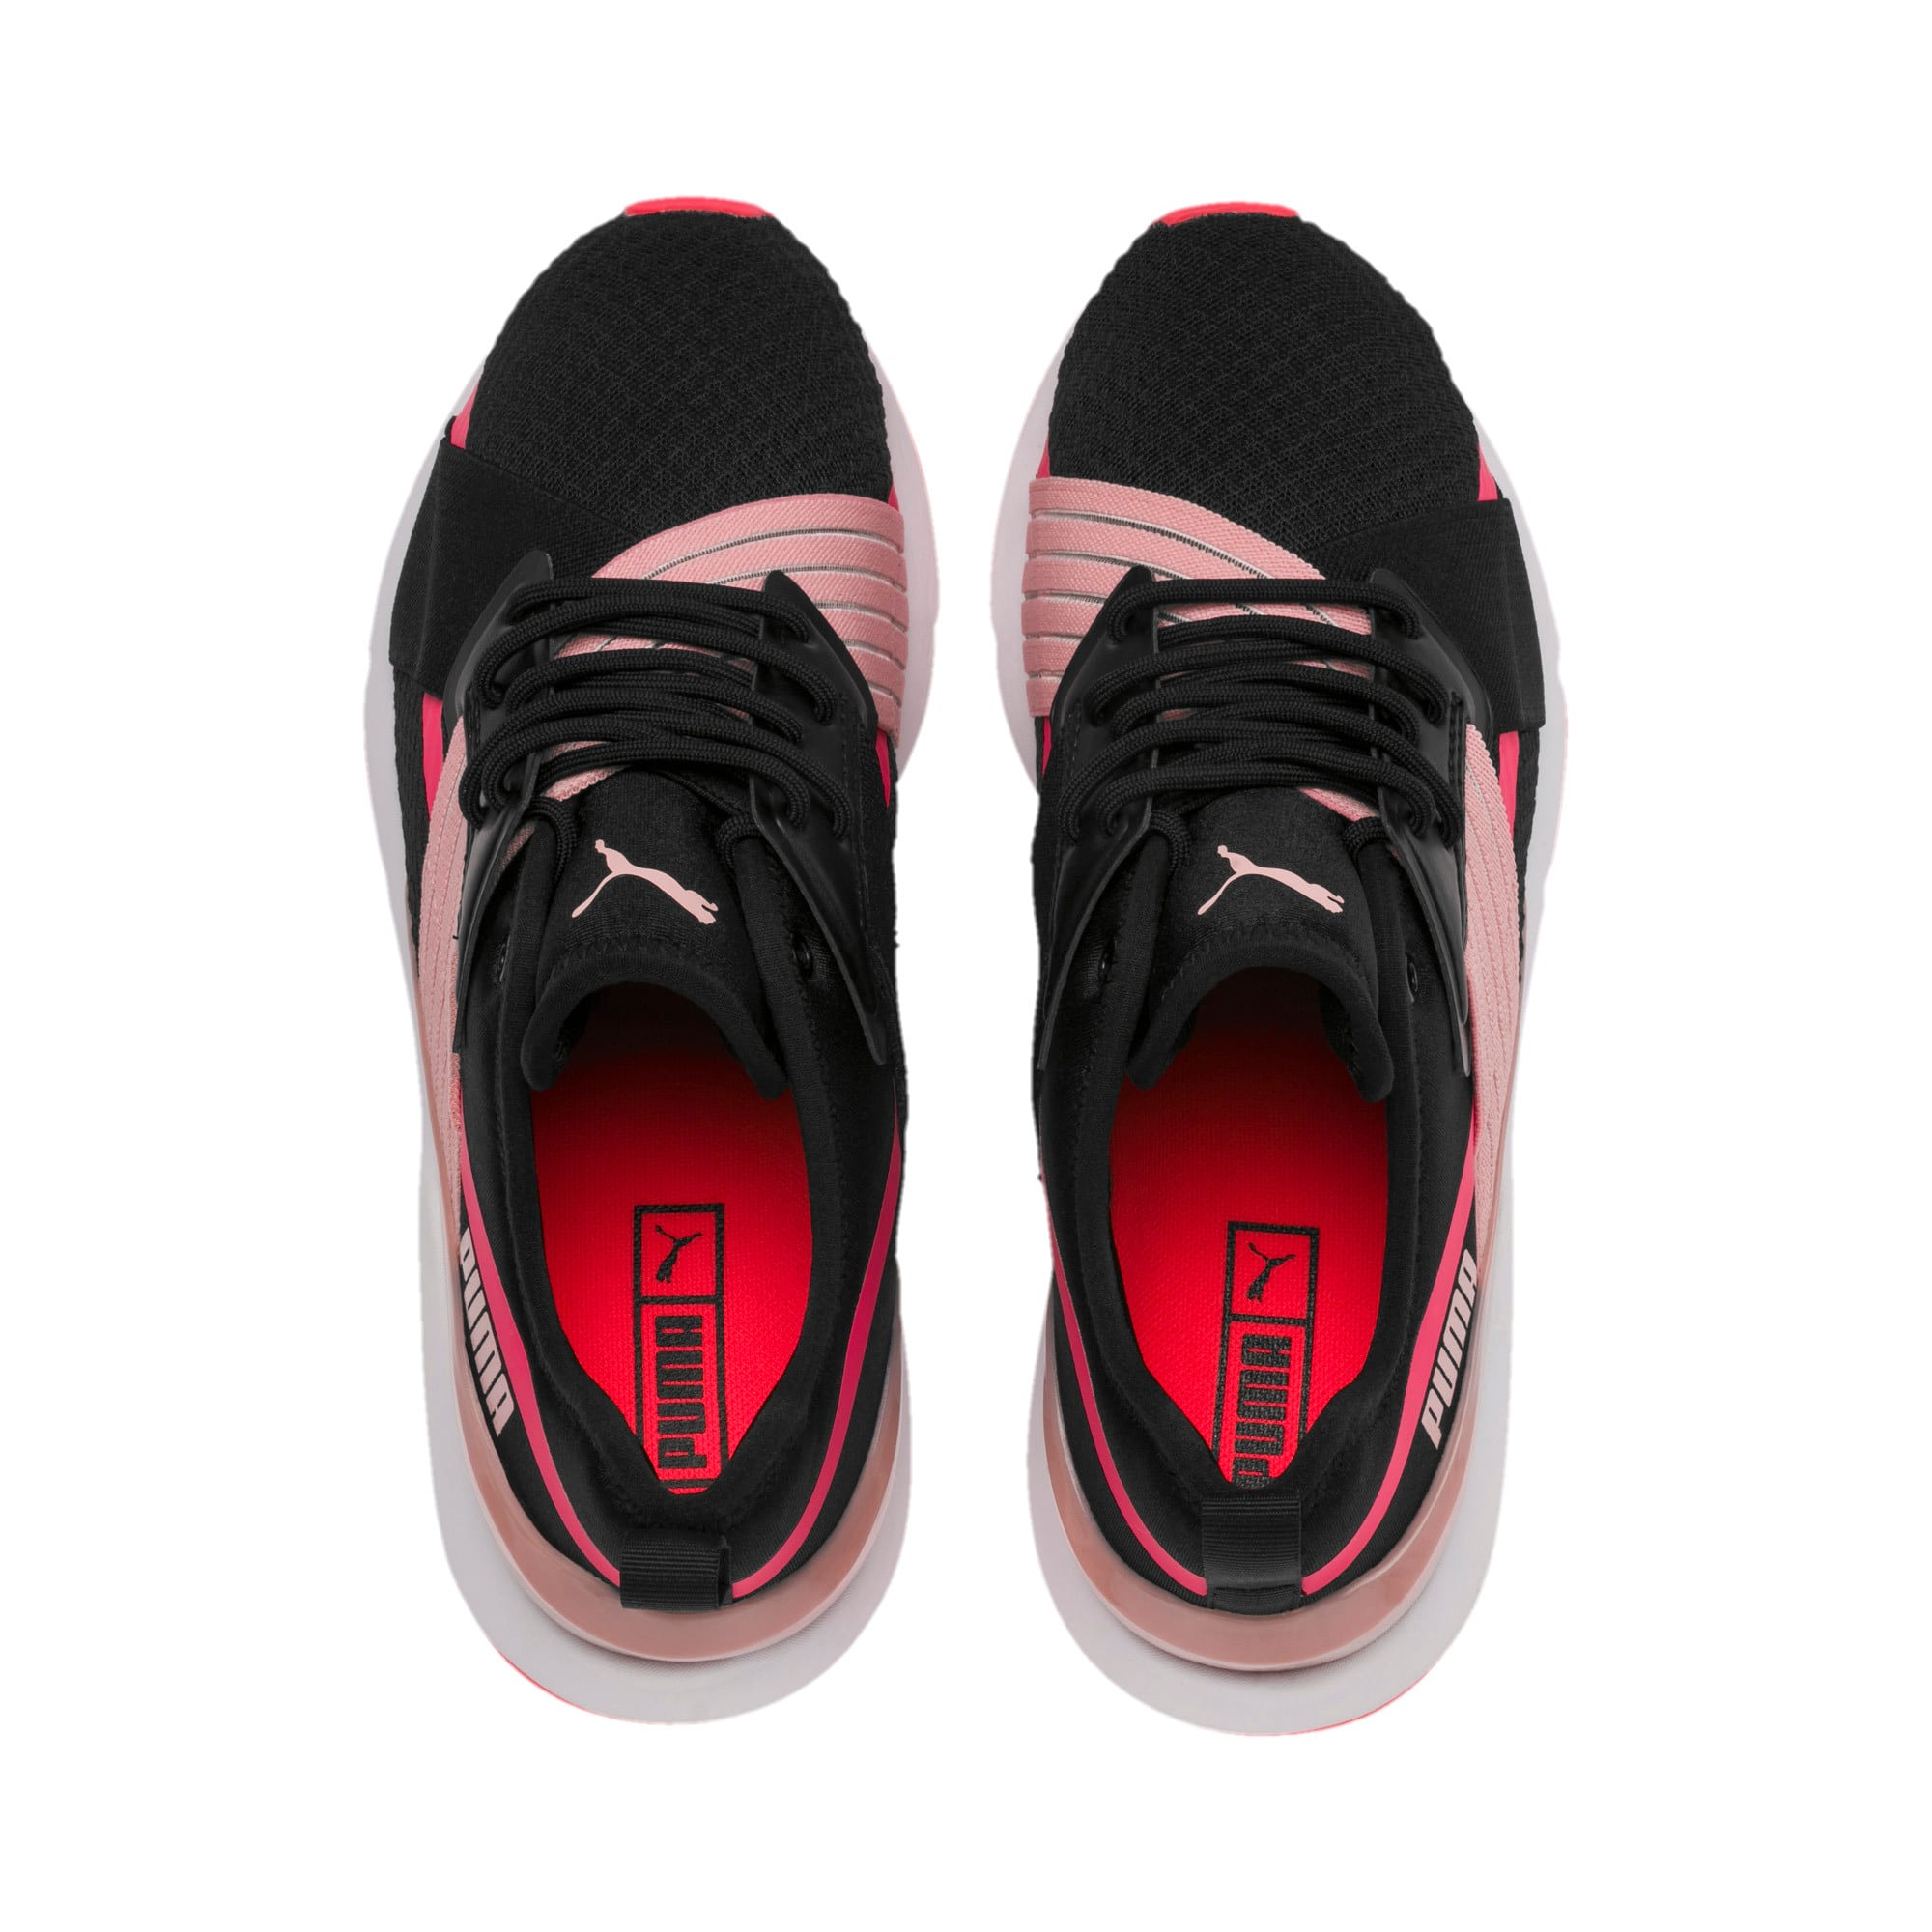 Thumbnail 7 of Muse X-2 Women's Sneakers, Puma Black-Bridal Rose, medium